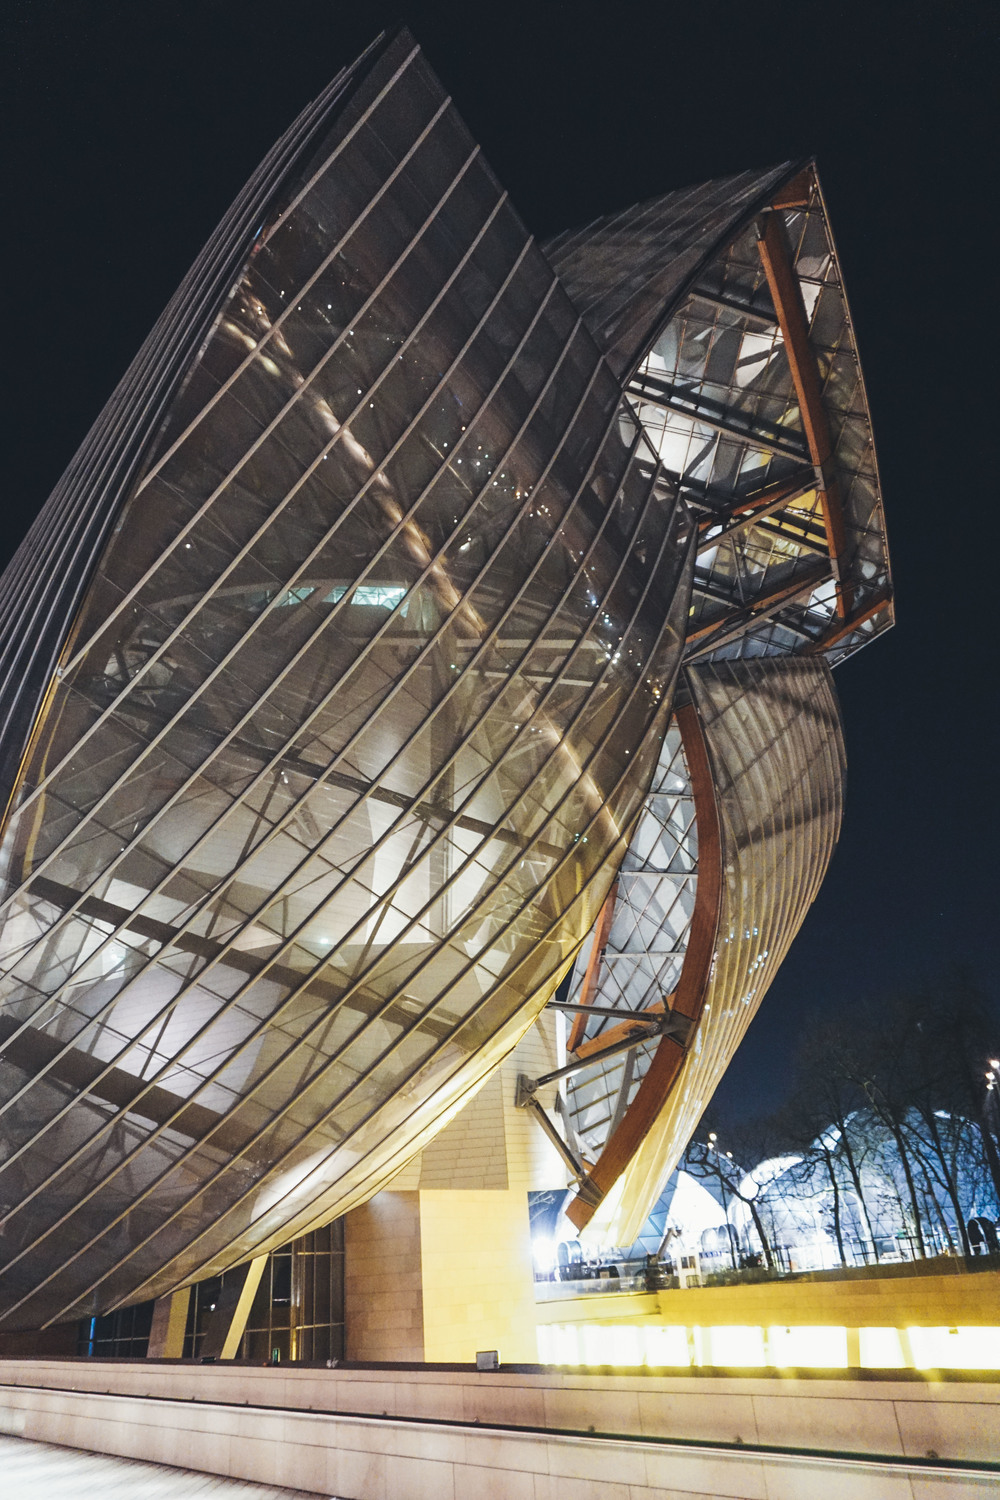 Foundation Louis Vuitton in Paris